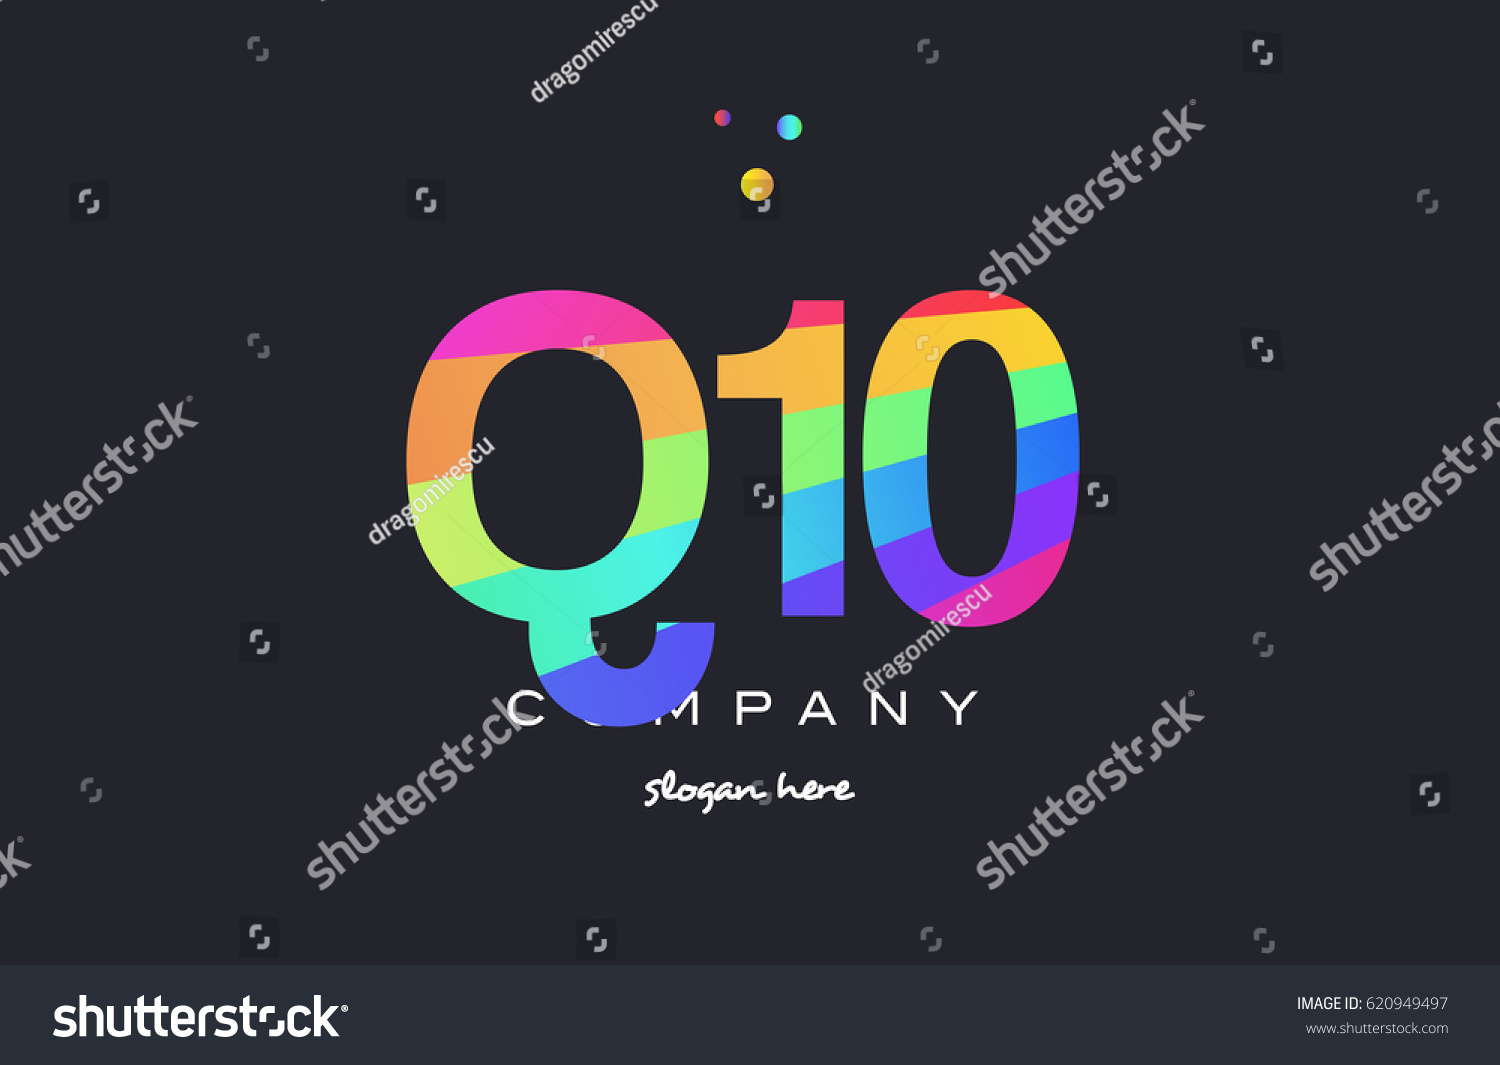 Q10 q 10 ten letter number combination creative color green orange blue  magenta pink company logo